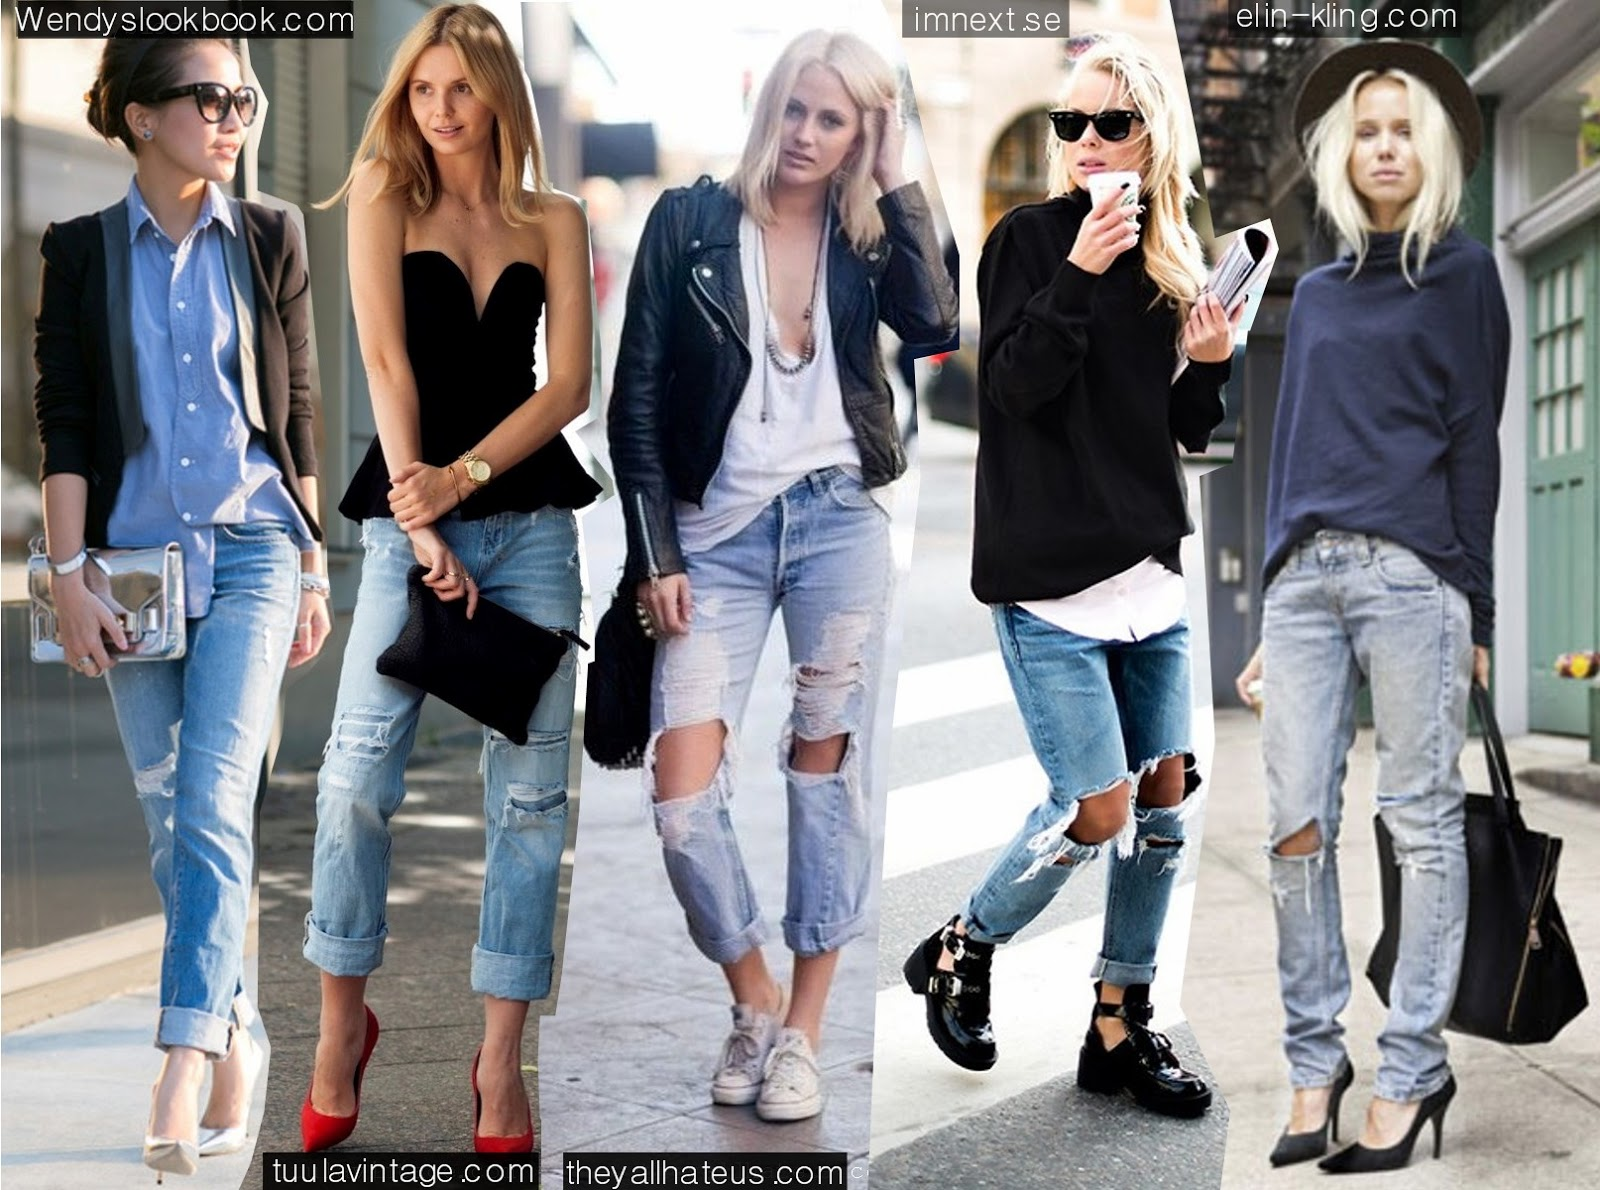 Charlotte Harvs X Fashion Fade: 5 Ways To Wear Boyfriend Jeans